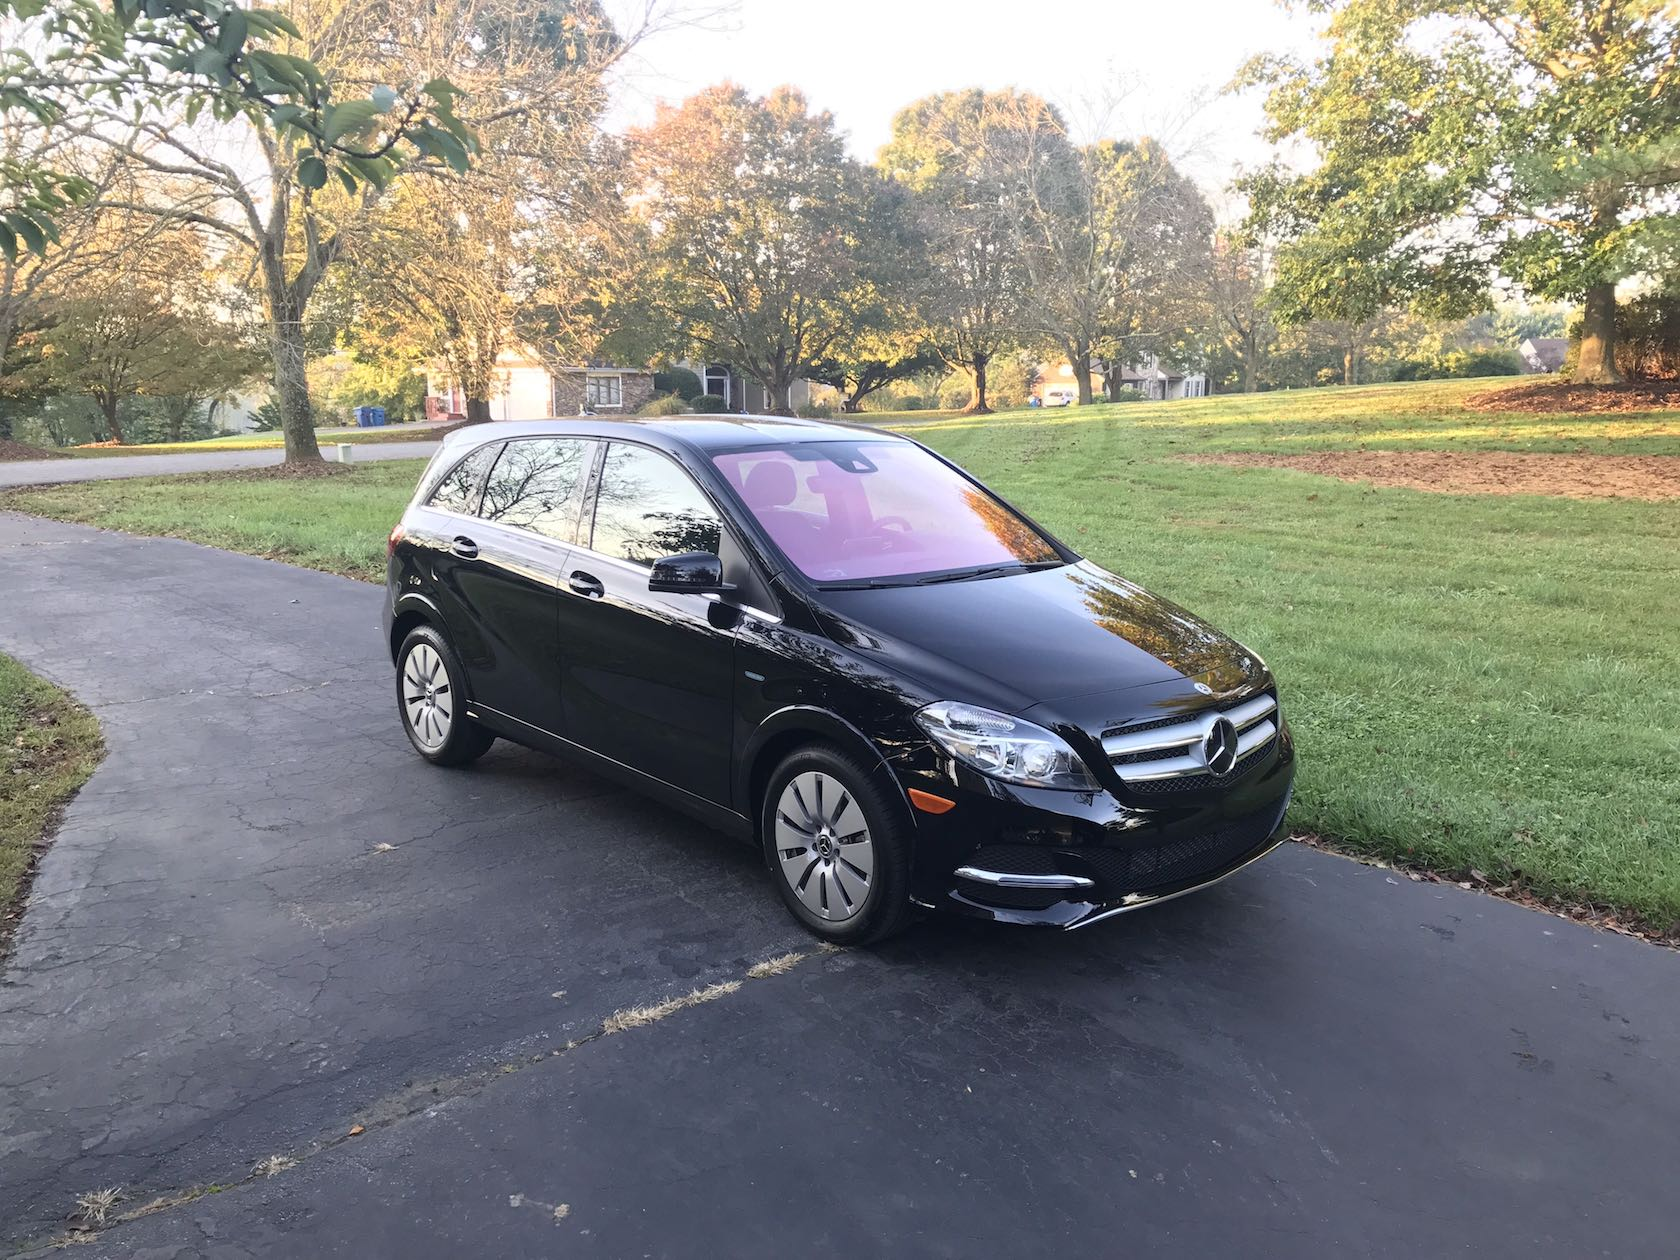 Looking To Transfer My 2017 Mercedes B250e With 22 Months Remaining For 320 Mo And 7500miles Per Year